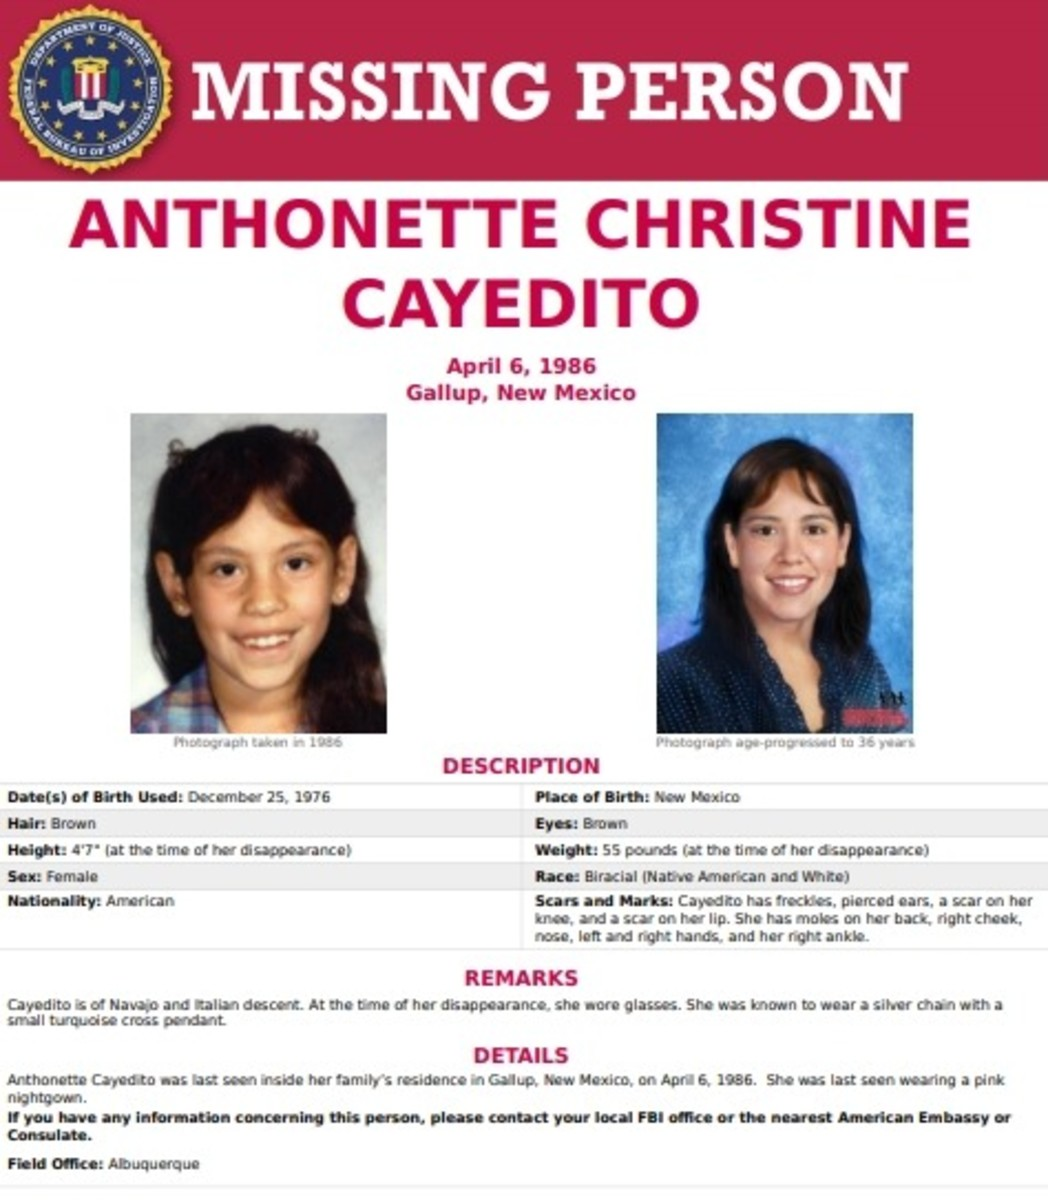 Anthonette Christine Cayedito - FBI Missing Person poster.